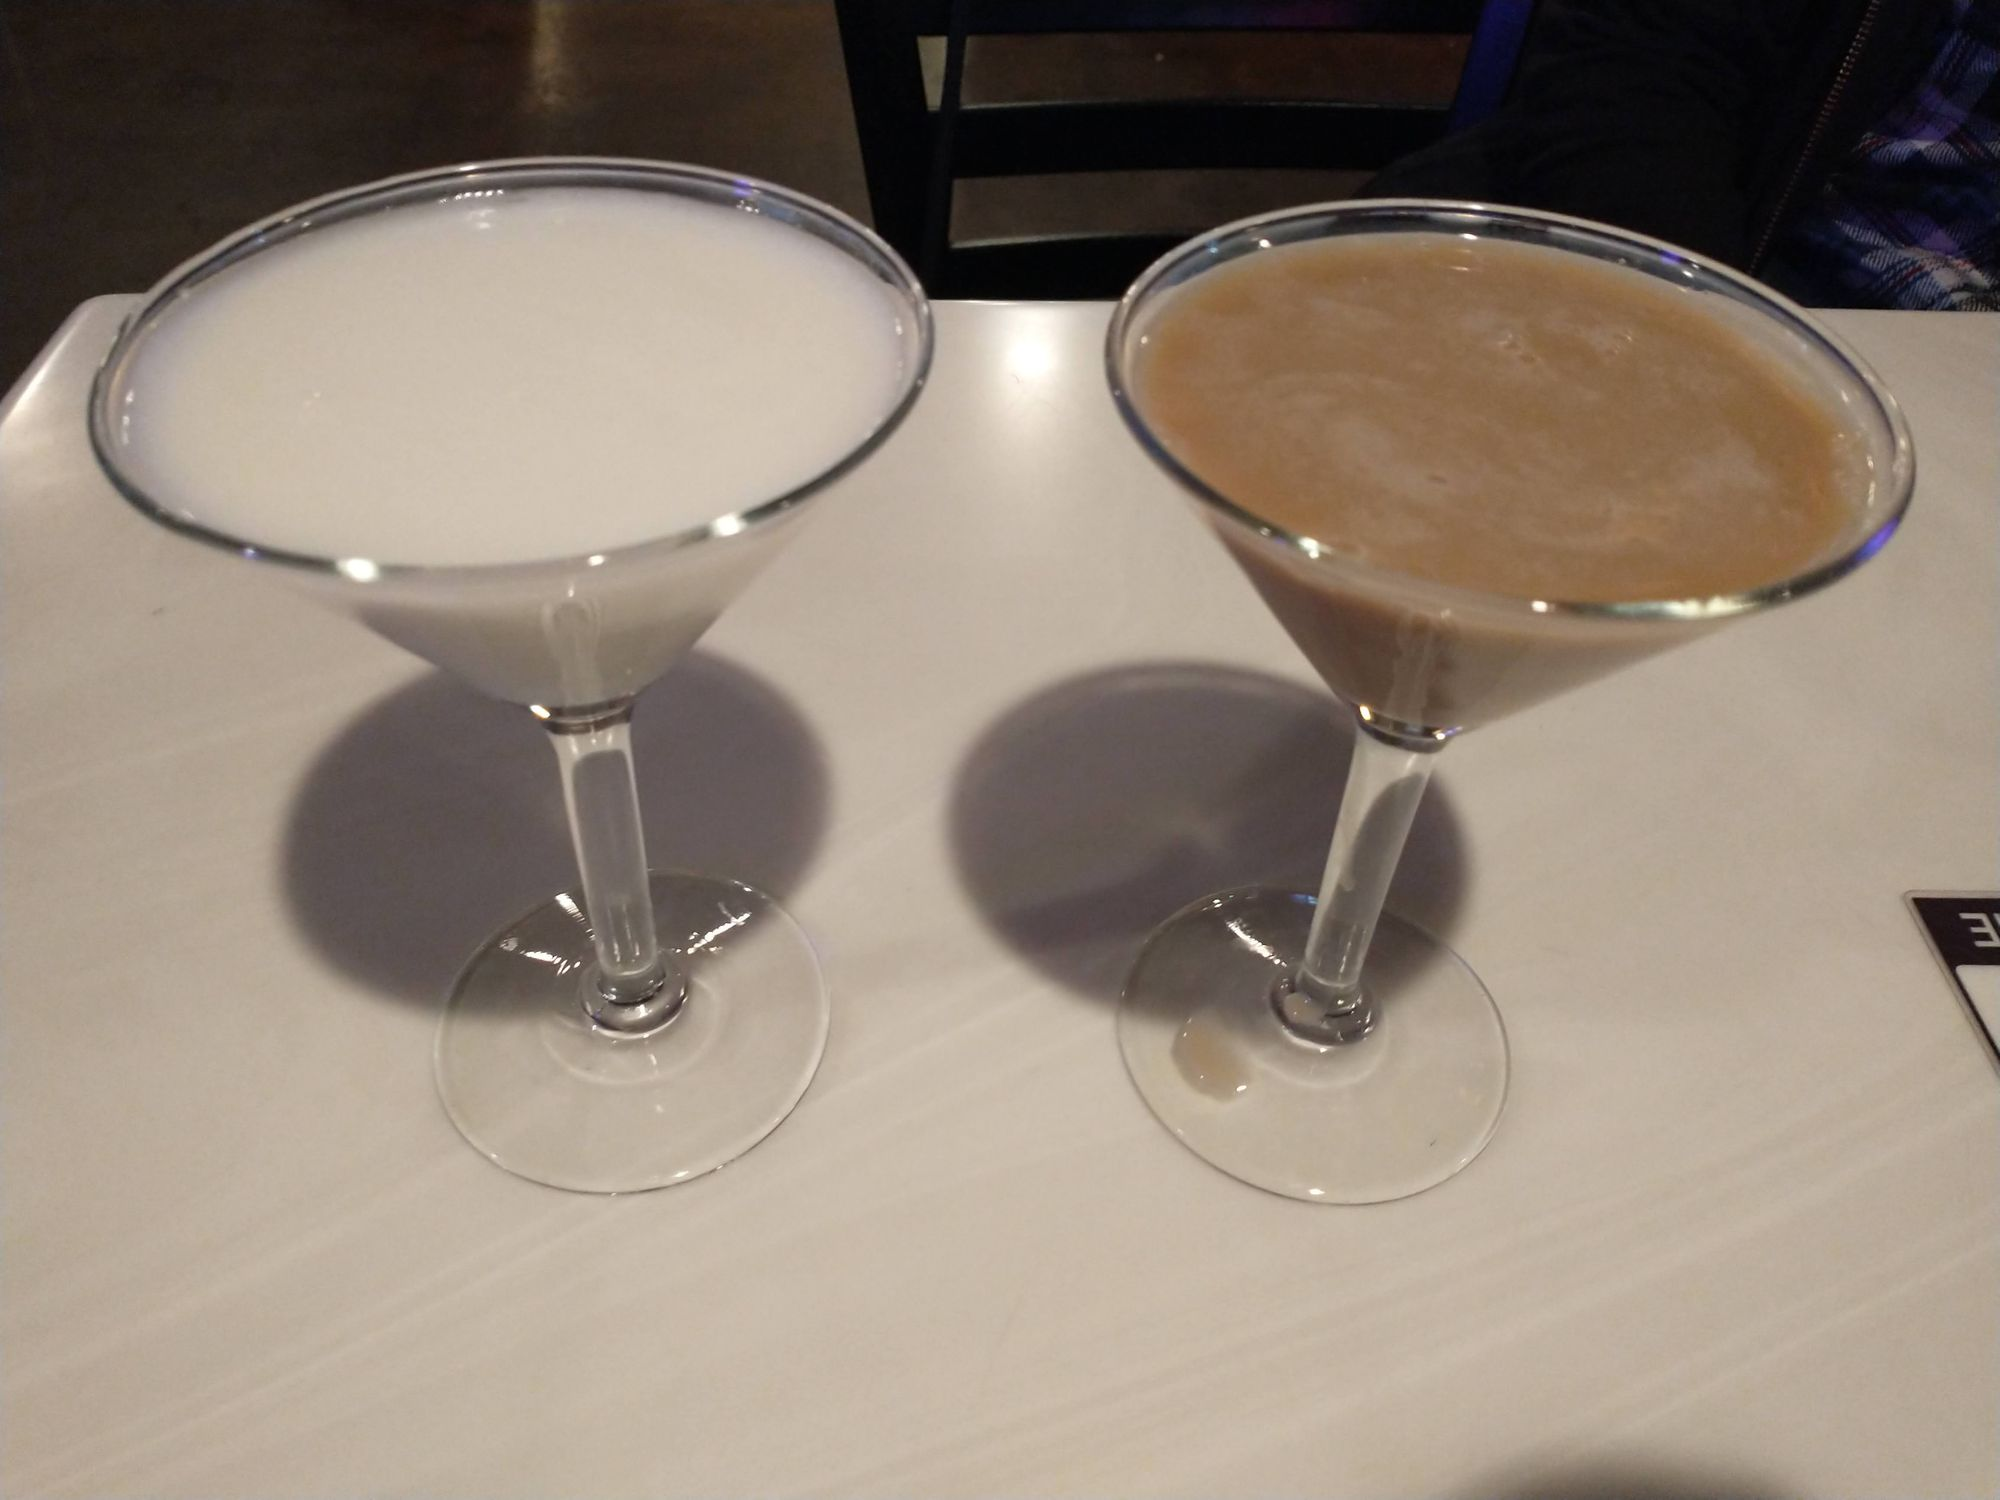 A taste of Mort's: Is it time to hit this bar now?